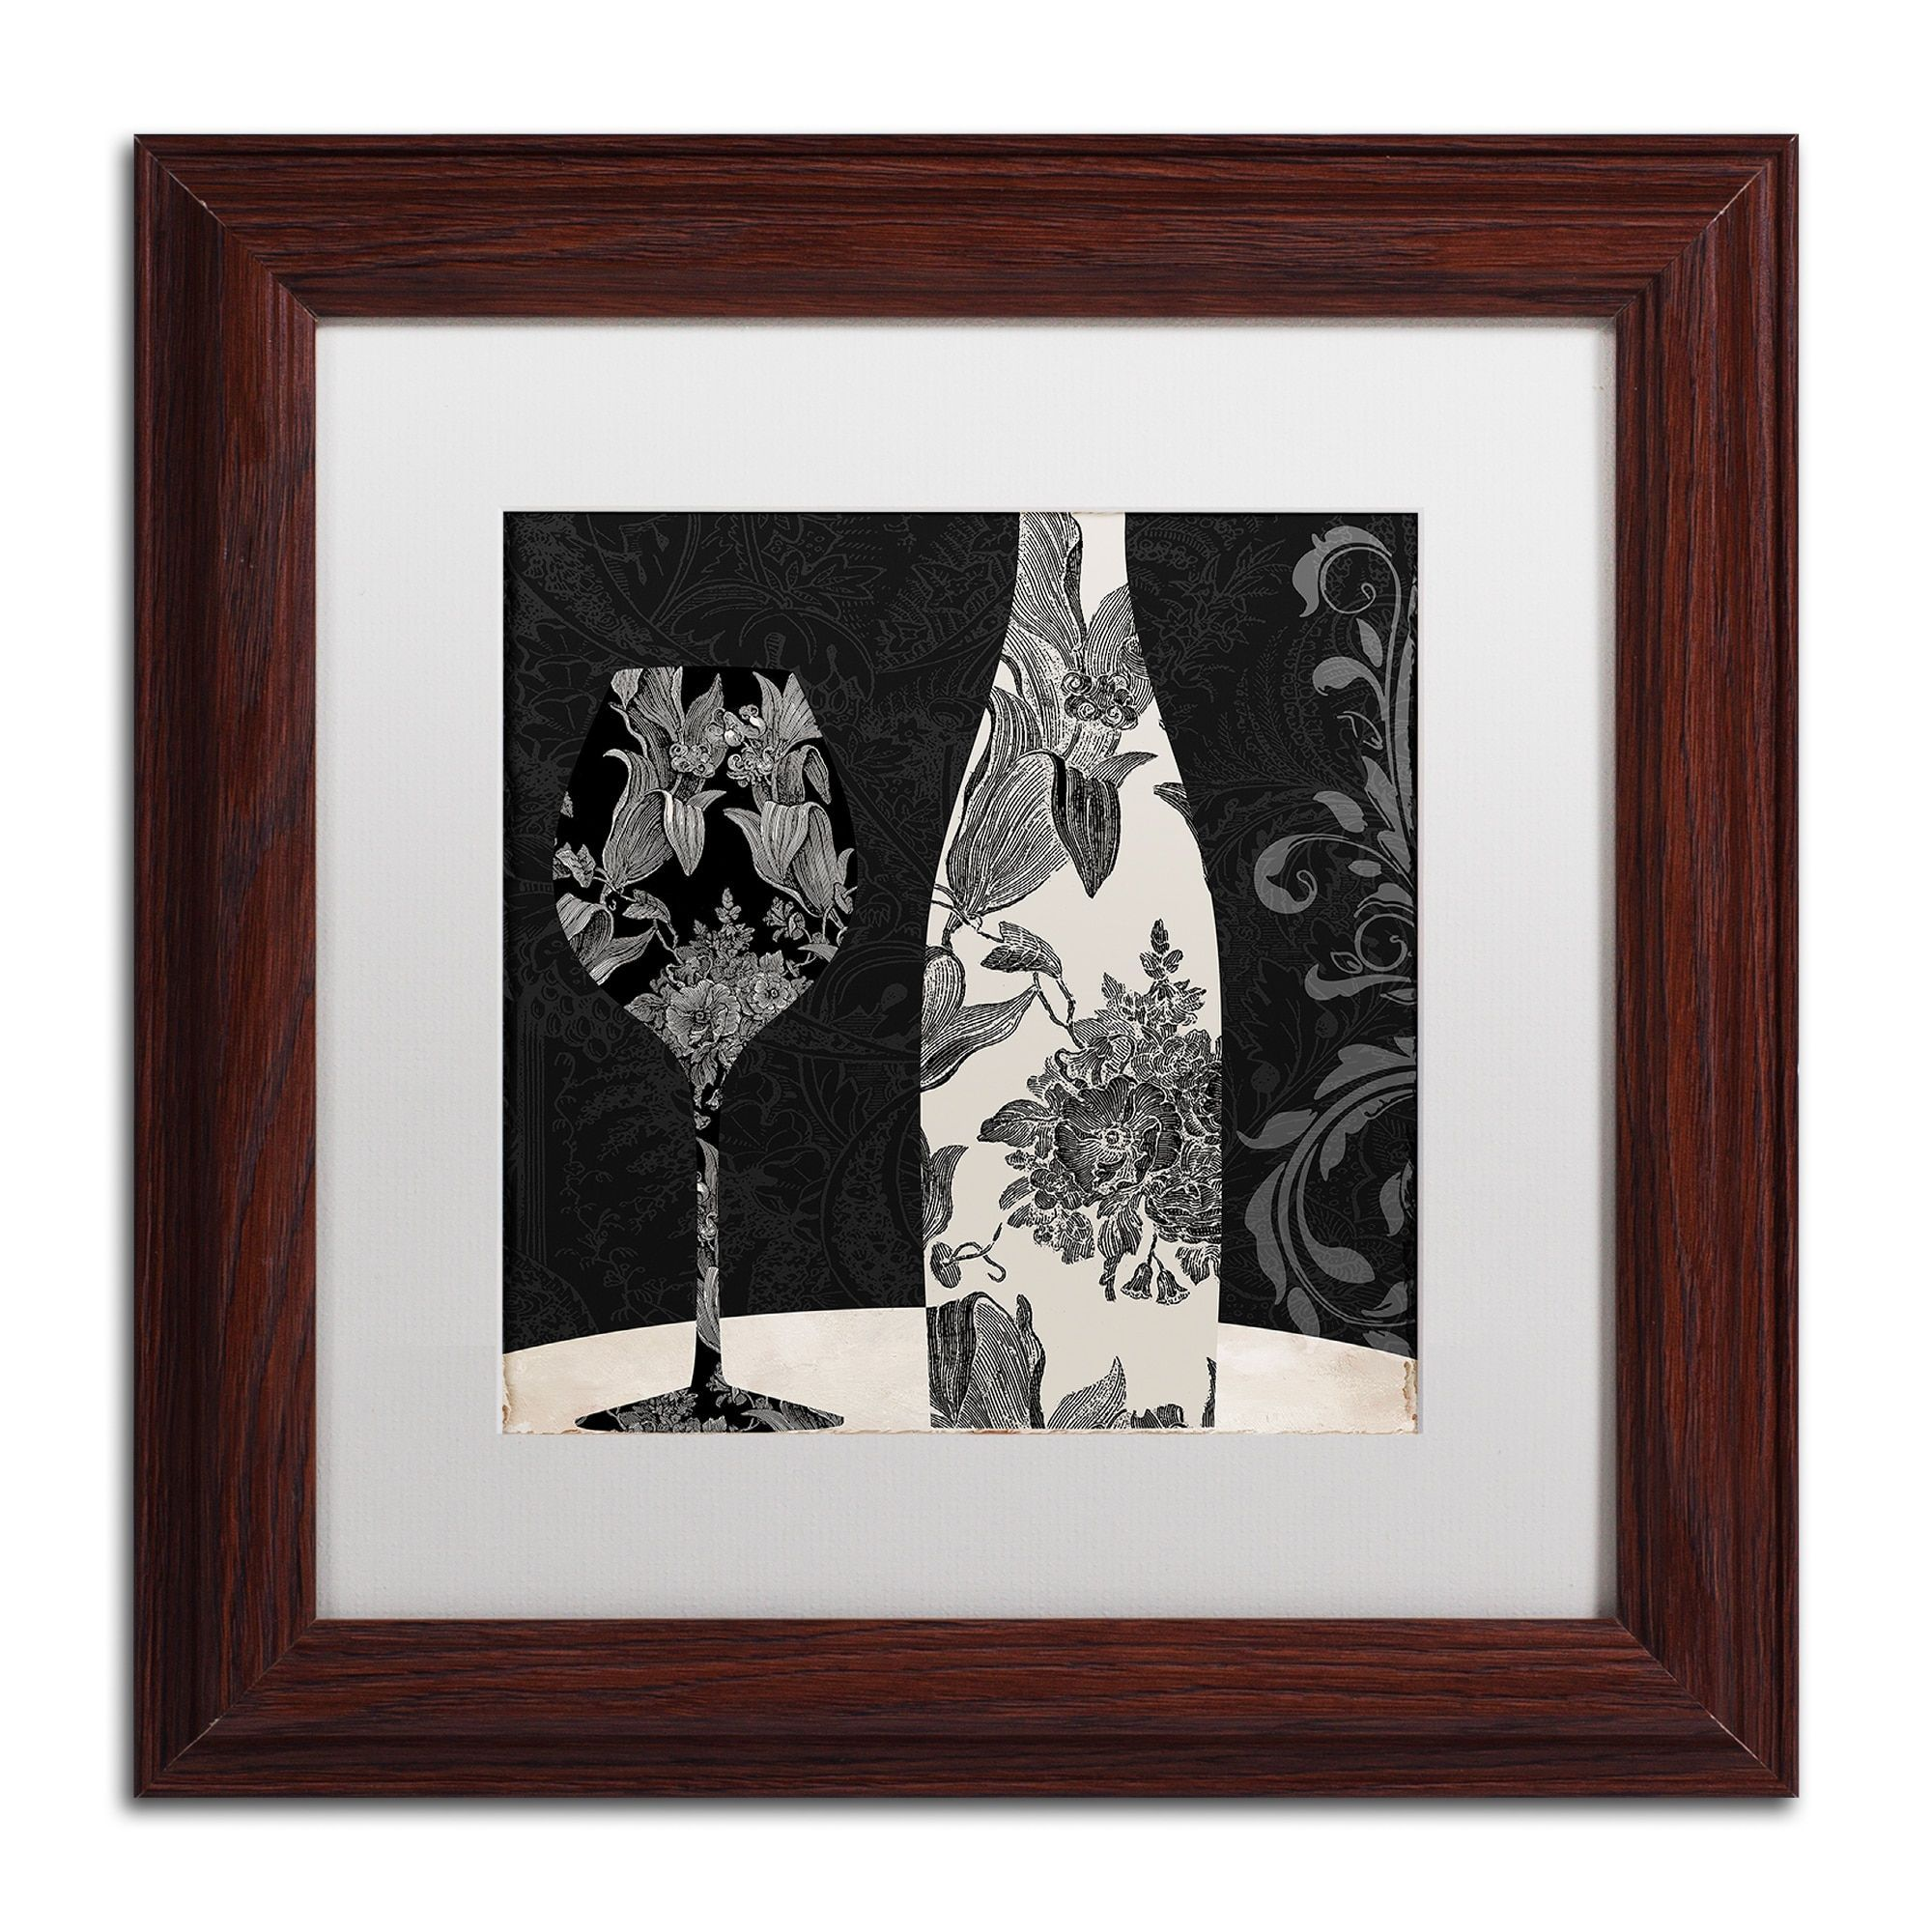 Color bakery uvin elegant iu matted framed art products